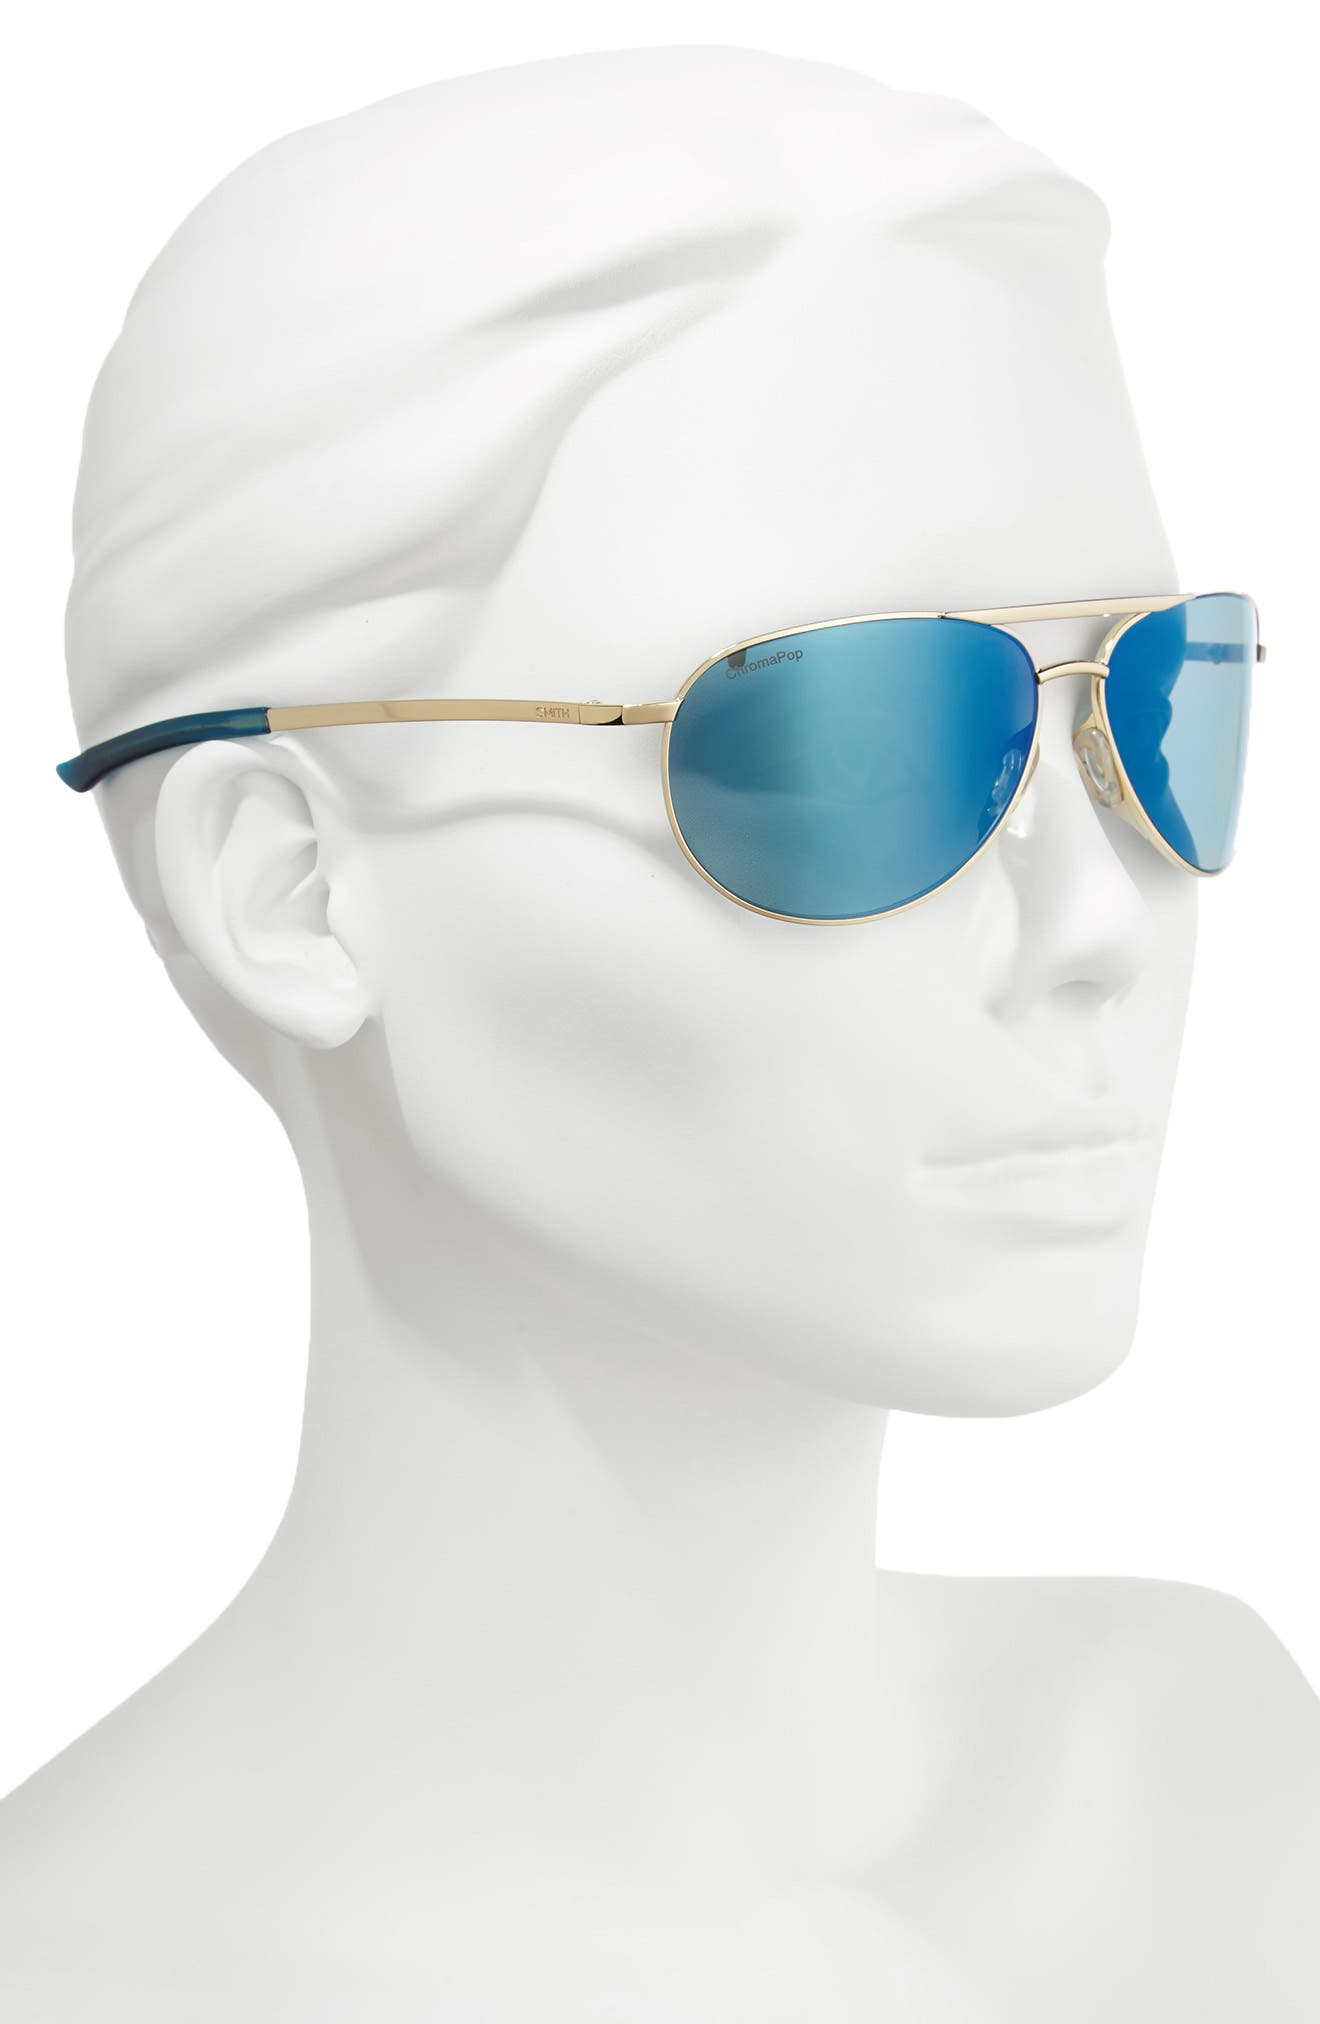 Serpico Slim 2.0 60mm ChromaPop Polarized Aviator Sunglasses,                             Alternate thumbnail 2, color,                             Gold/ Blue Polar